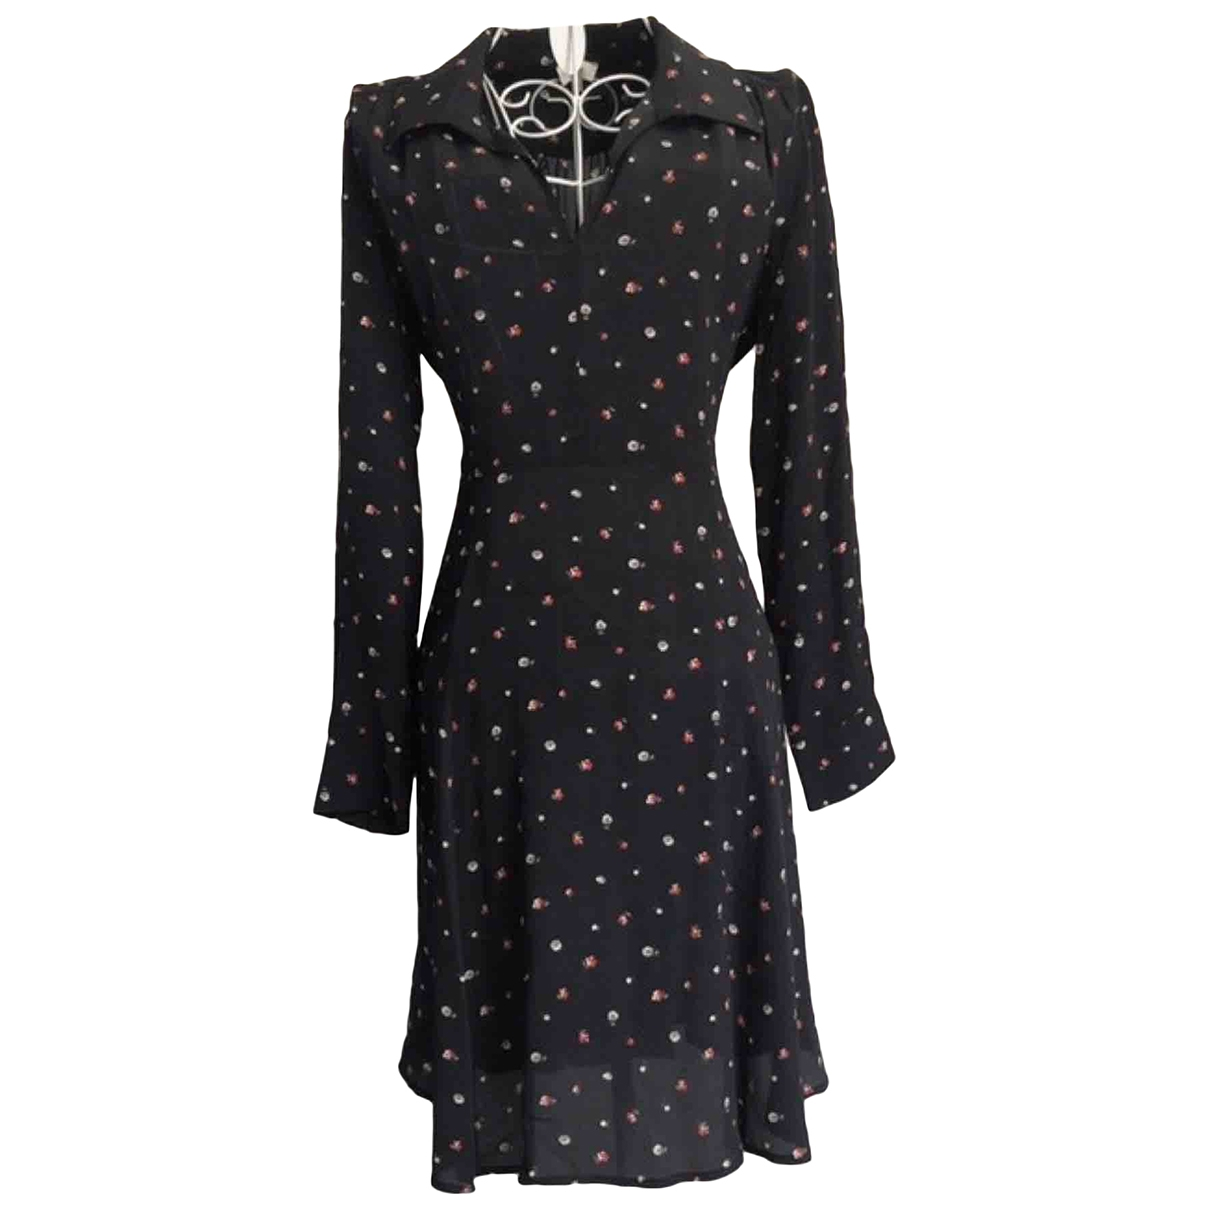 Pablo \N Black dress for Women 36 FR